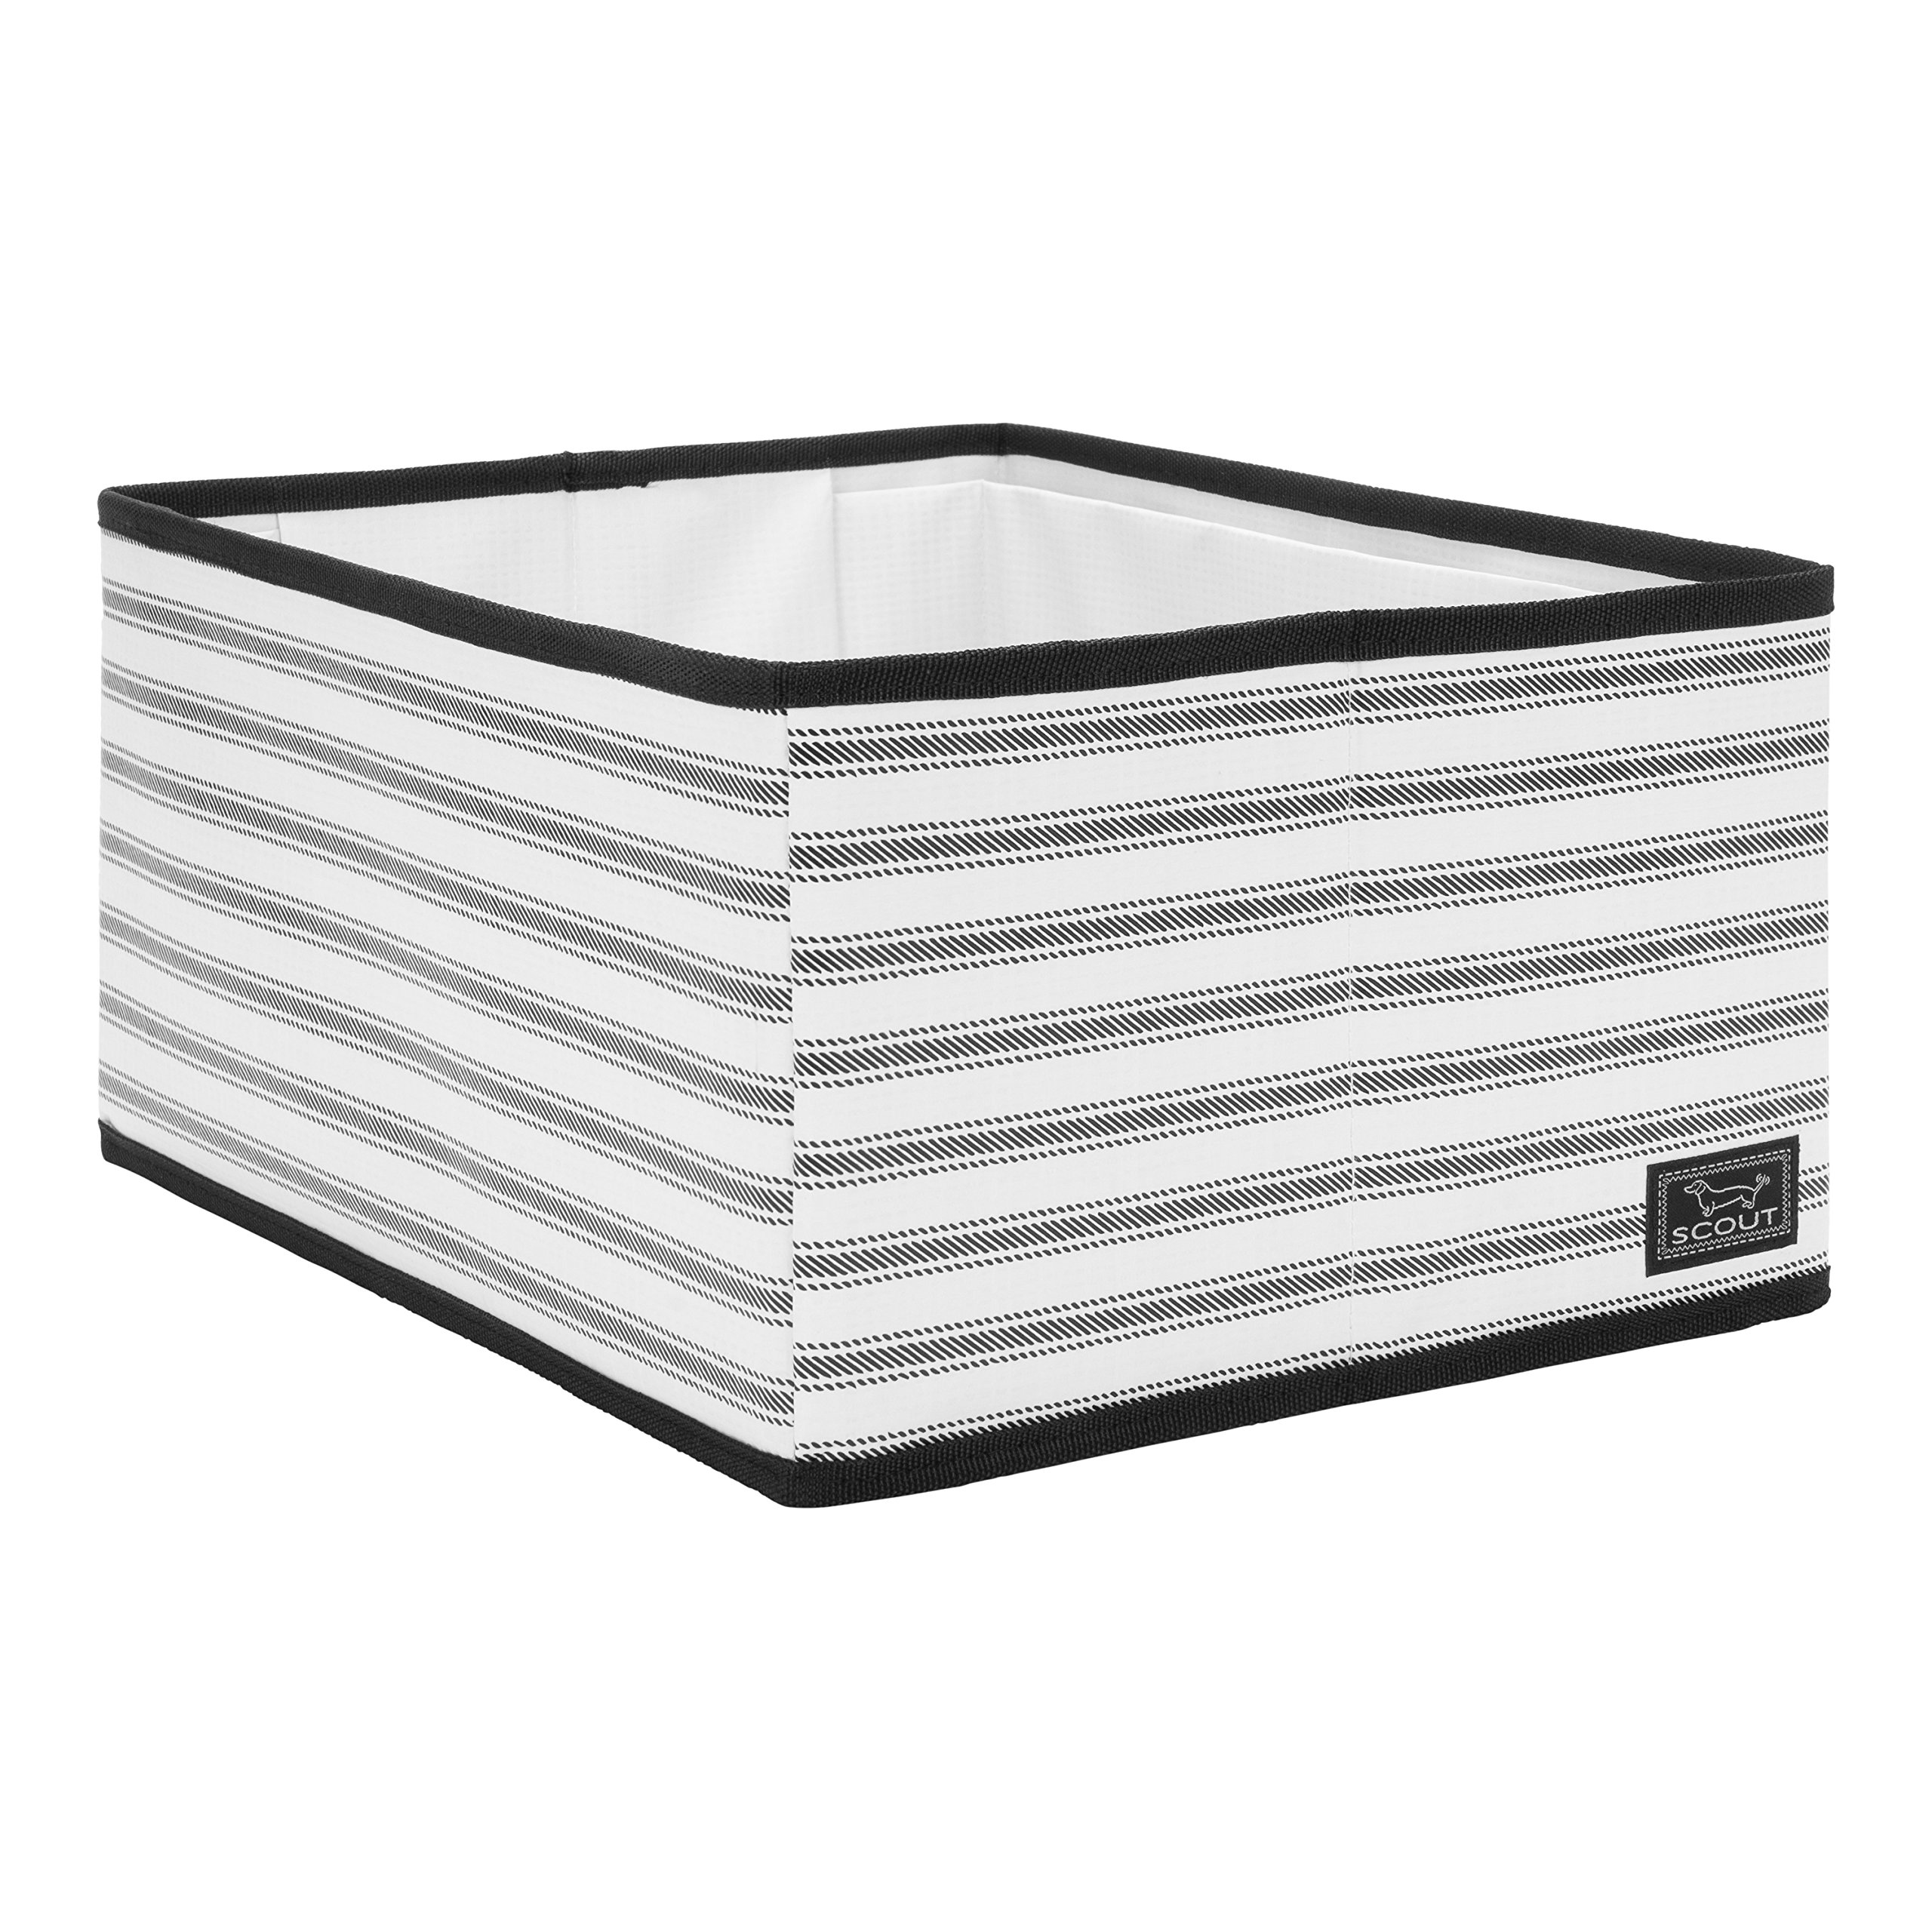 SCOUT Divide & Conquer Open-top Storage Bin, Stackable Design with Dividing Panel, Folds Flat, Water Resistant, College Ruled